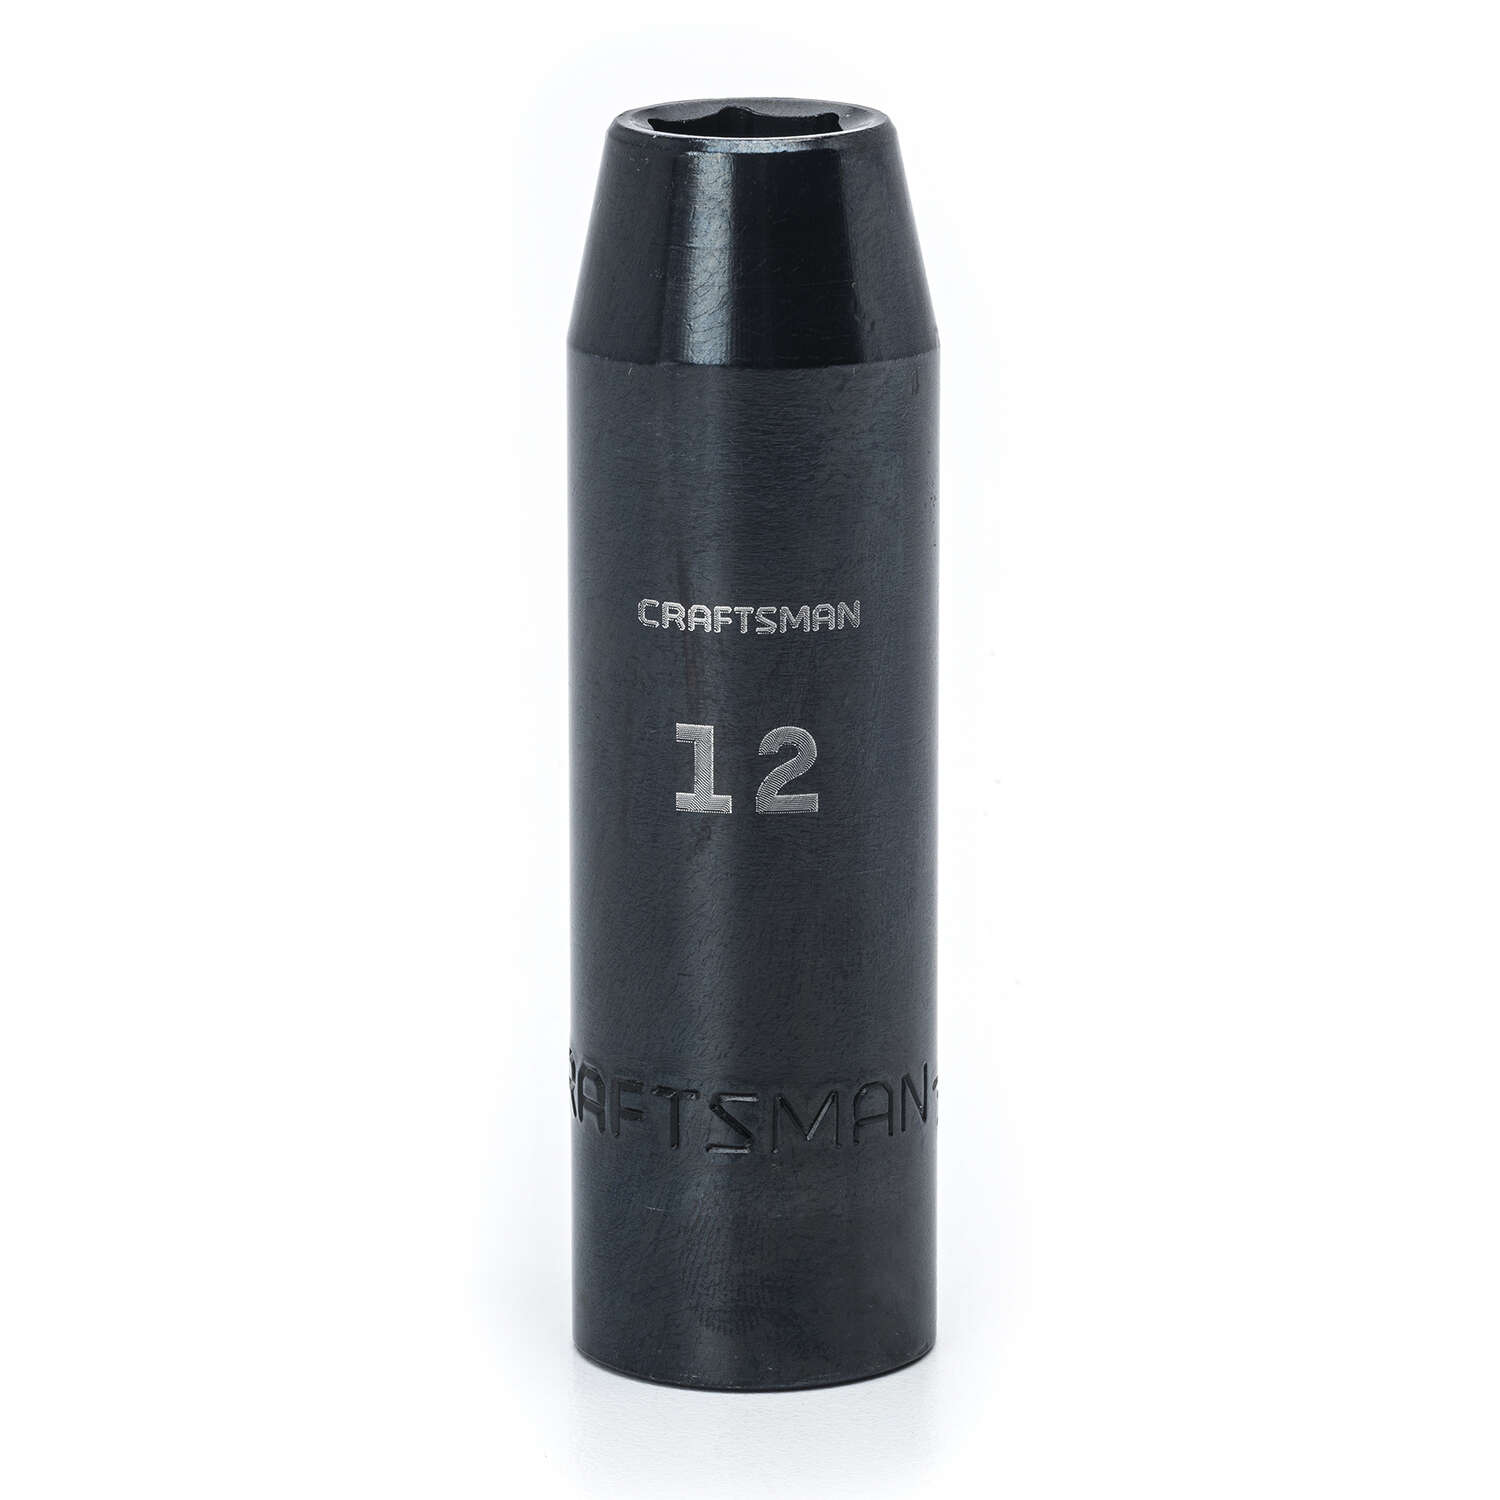 Craftsman  12 mm  x 1/2 in. drive  Metric  6 Point Deep  Deep Impact Socket  1 pc.